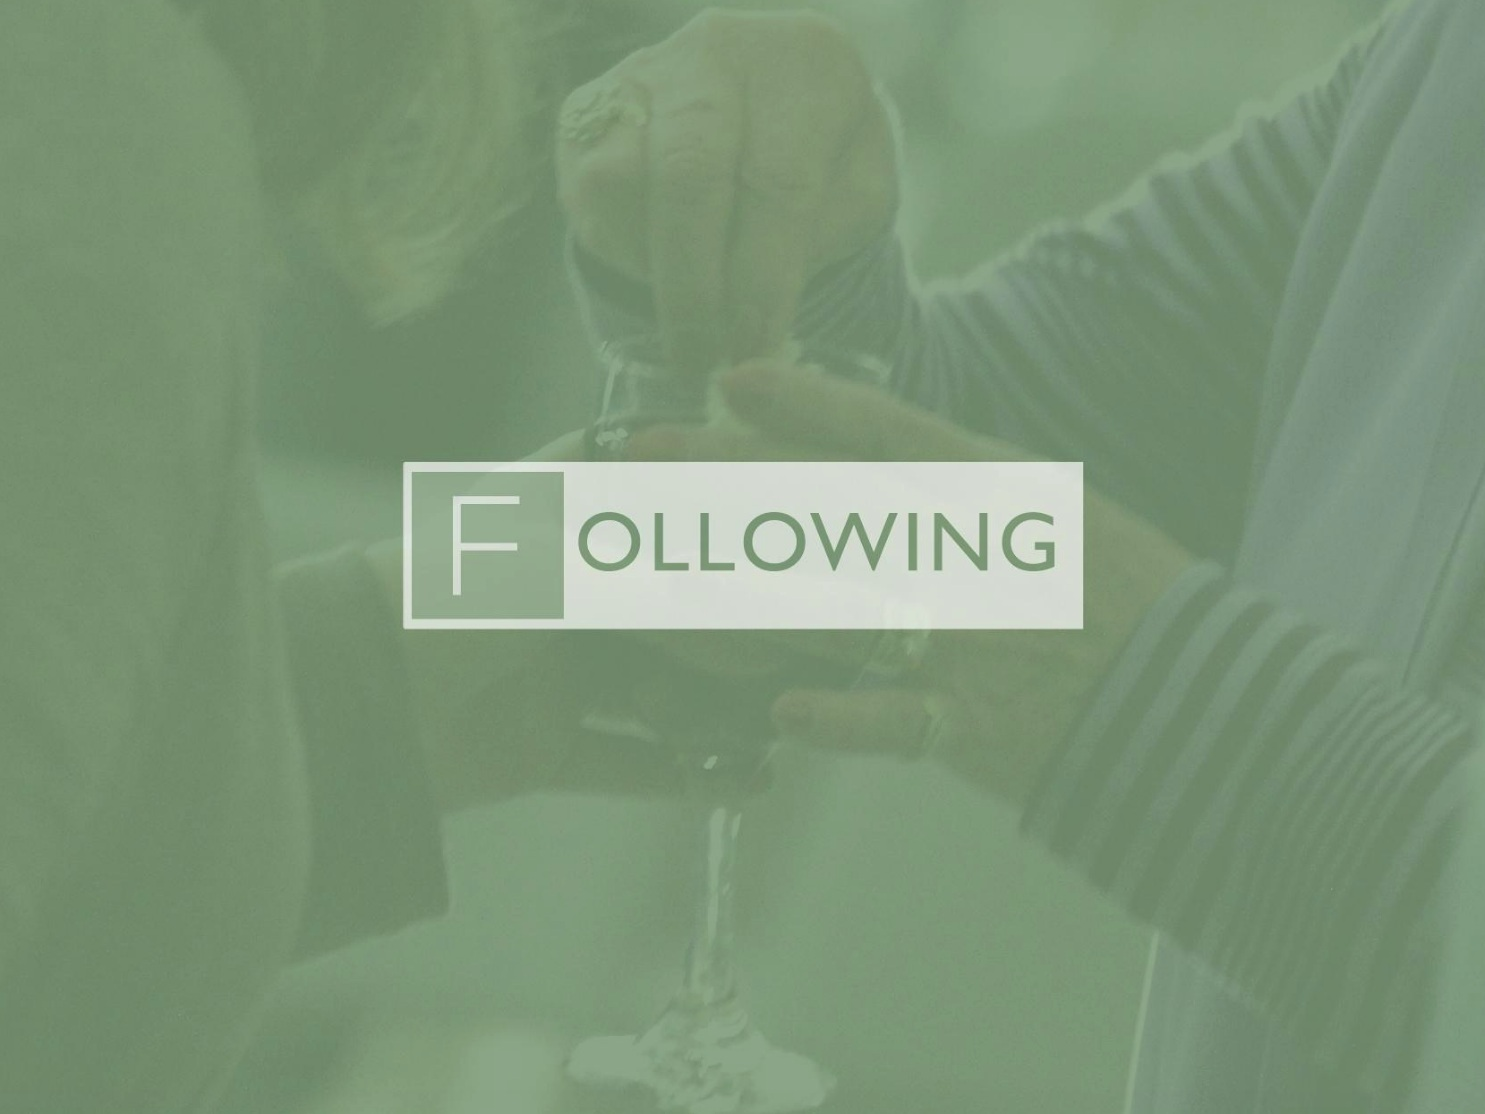 following jesus in groves - Jesus invites us to follow him as a disciple. A disciple is a learner. We are learning to be like Jesus and transformed through the power of the Holy Spirit. Transformation is not based upon what we do for God, it is based upon what Jesus did for us.Getting in a